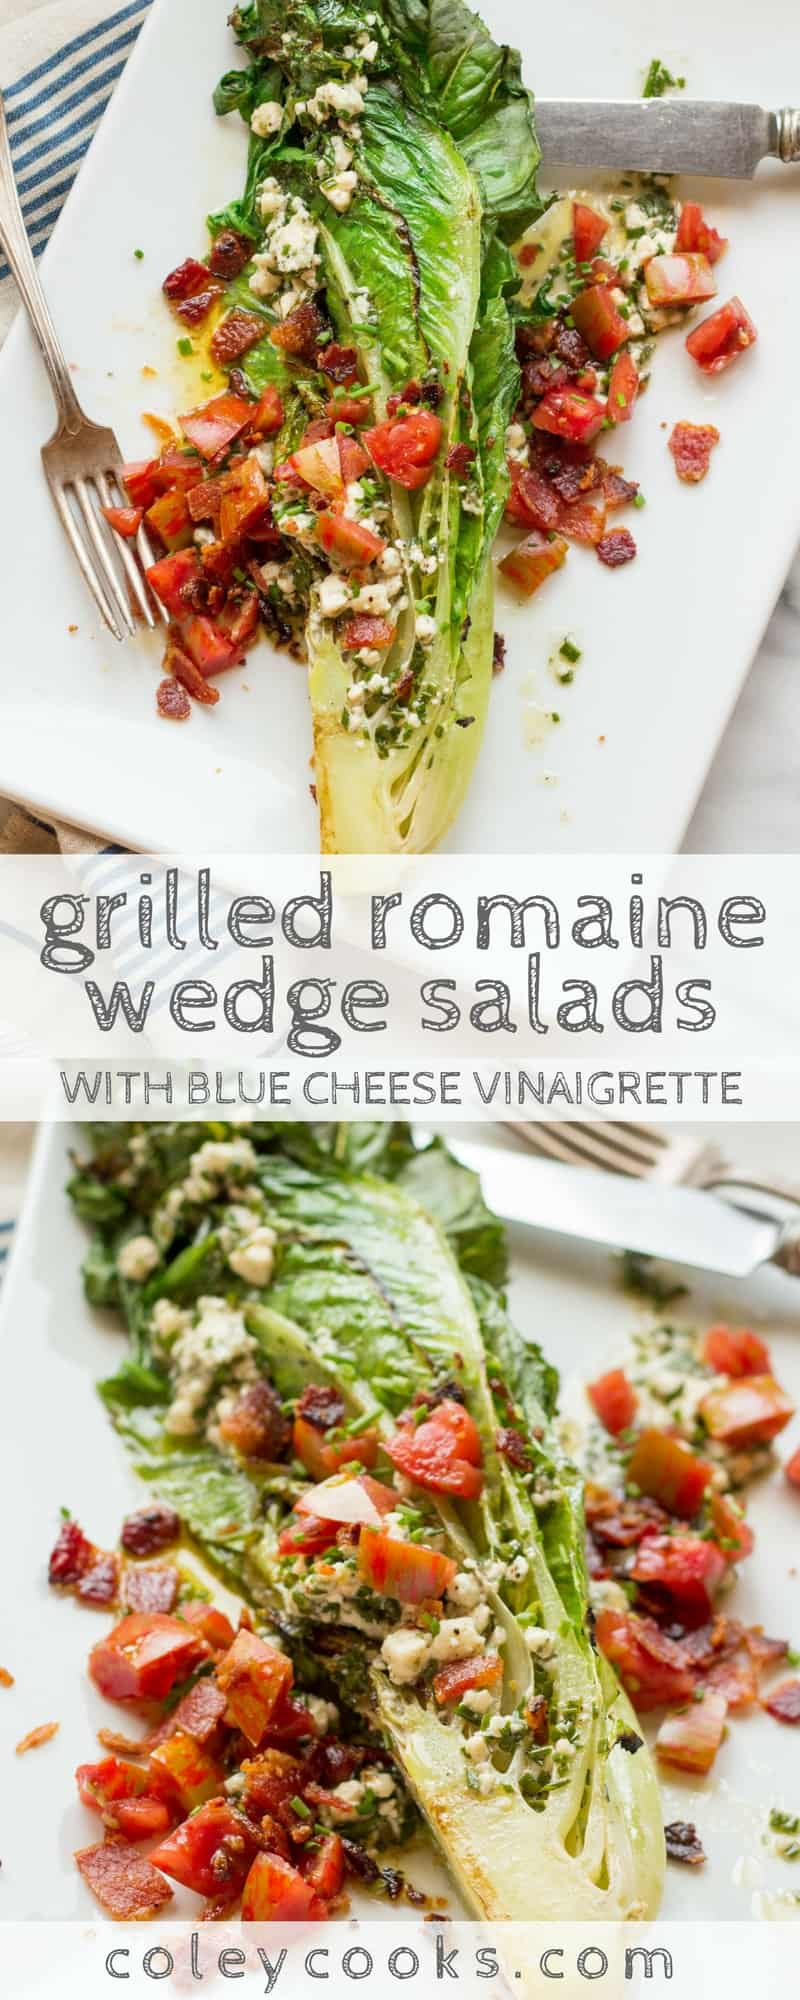 GRILLED ROMAINE WEDGE SALADS | This take on the classic steakhouse wedge salad uses romaine instead of iceberg, is grilled for more flavor, loaded with crispy bacon and juicy tomatoes, plus it's lighter thanks to a blue cheese vinaigrette! | ColeyCooks.com